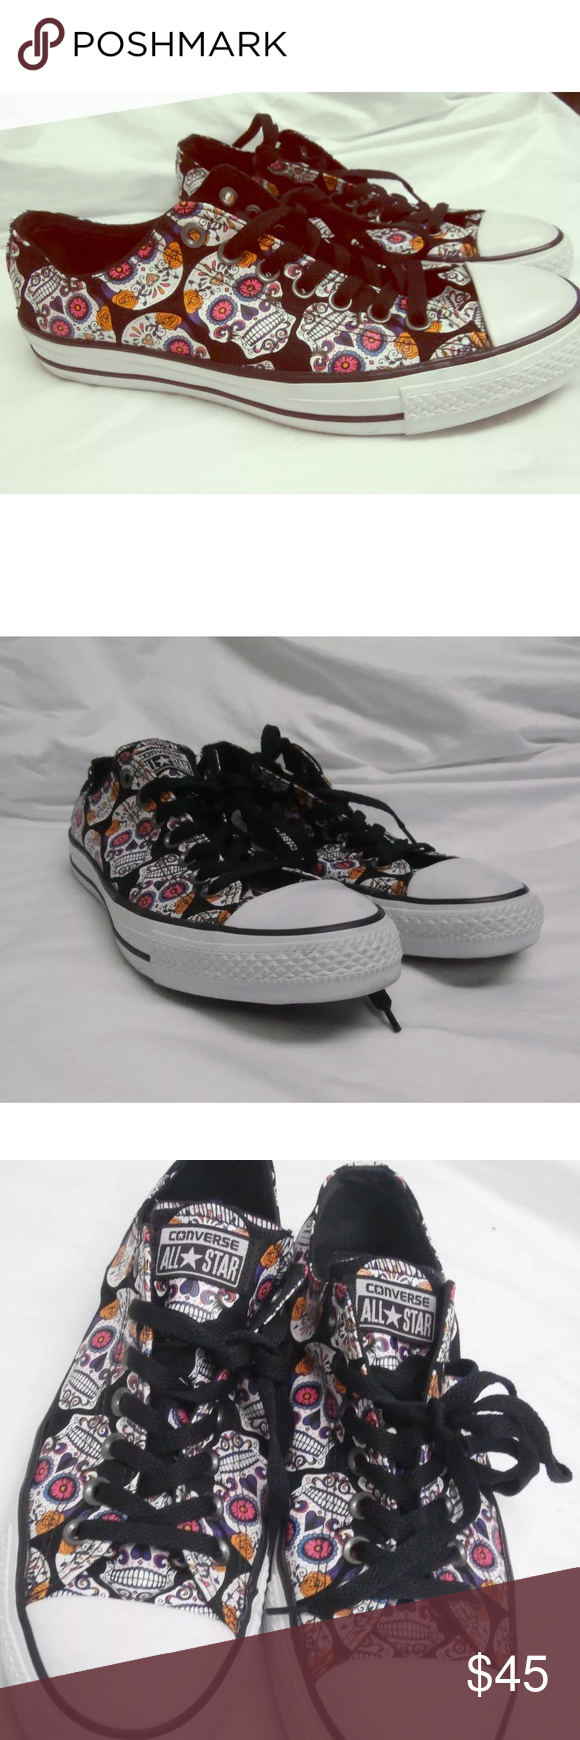 18cf508162c Converse sugar skulls day of the dead 💀 low tops CONVERSE Style 154893F  sugar skull print. Multi-color Day of the Dead skulls on a black background.